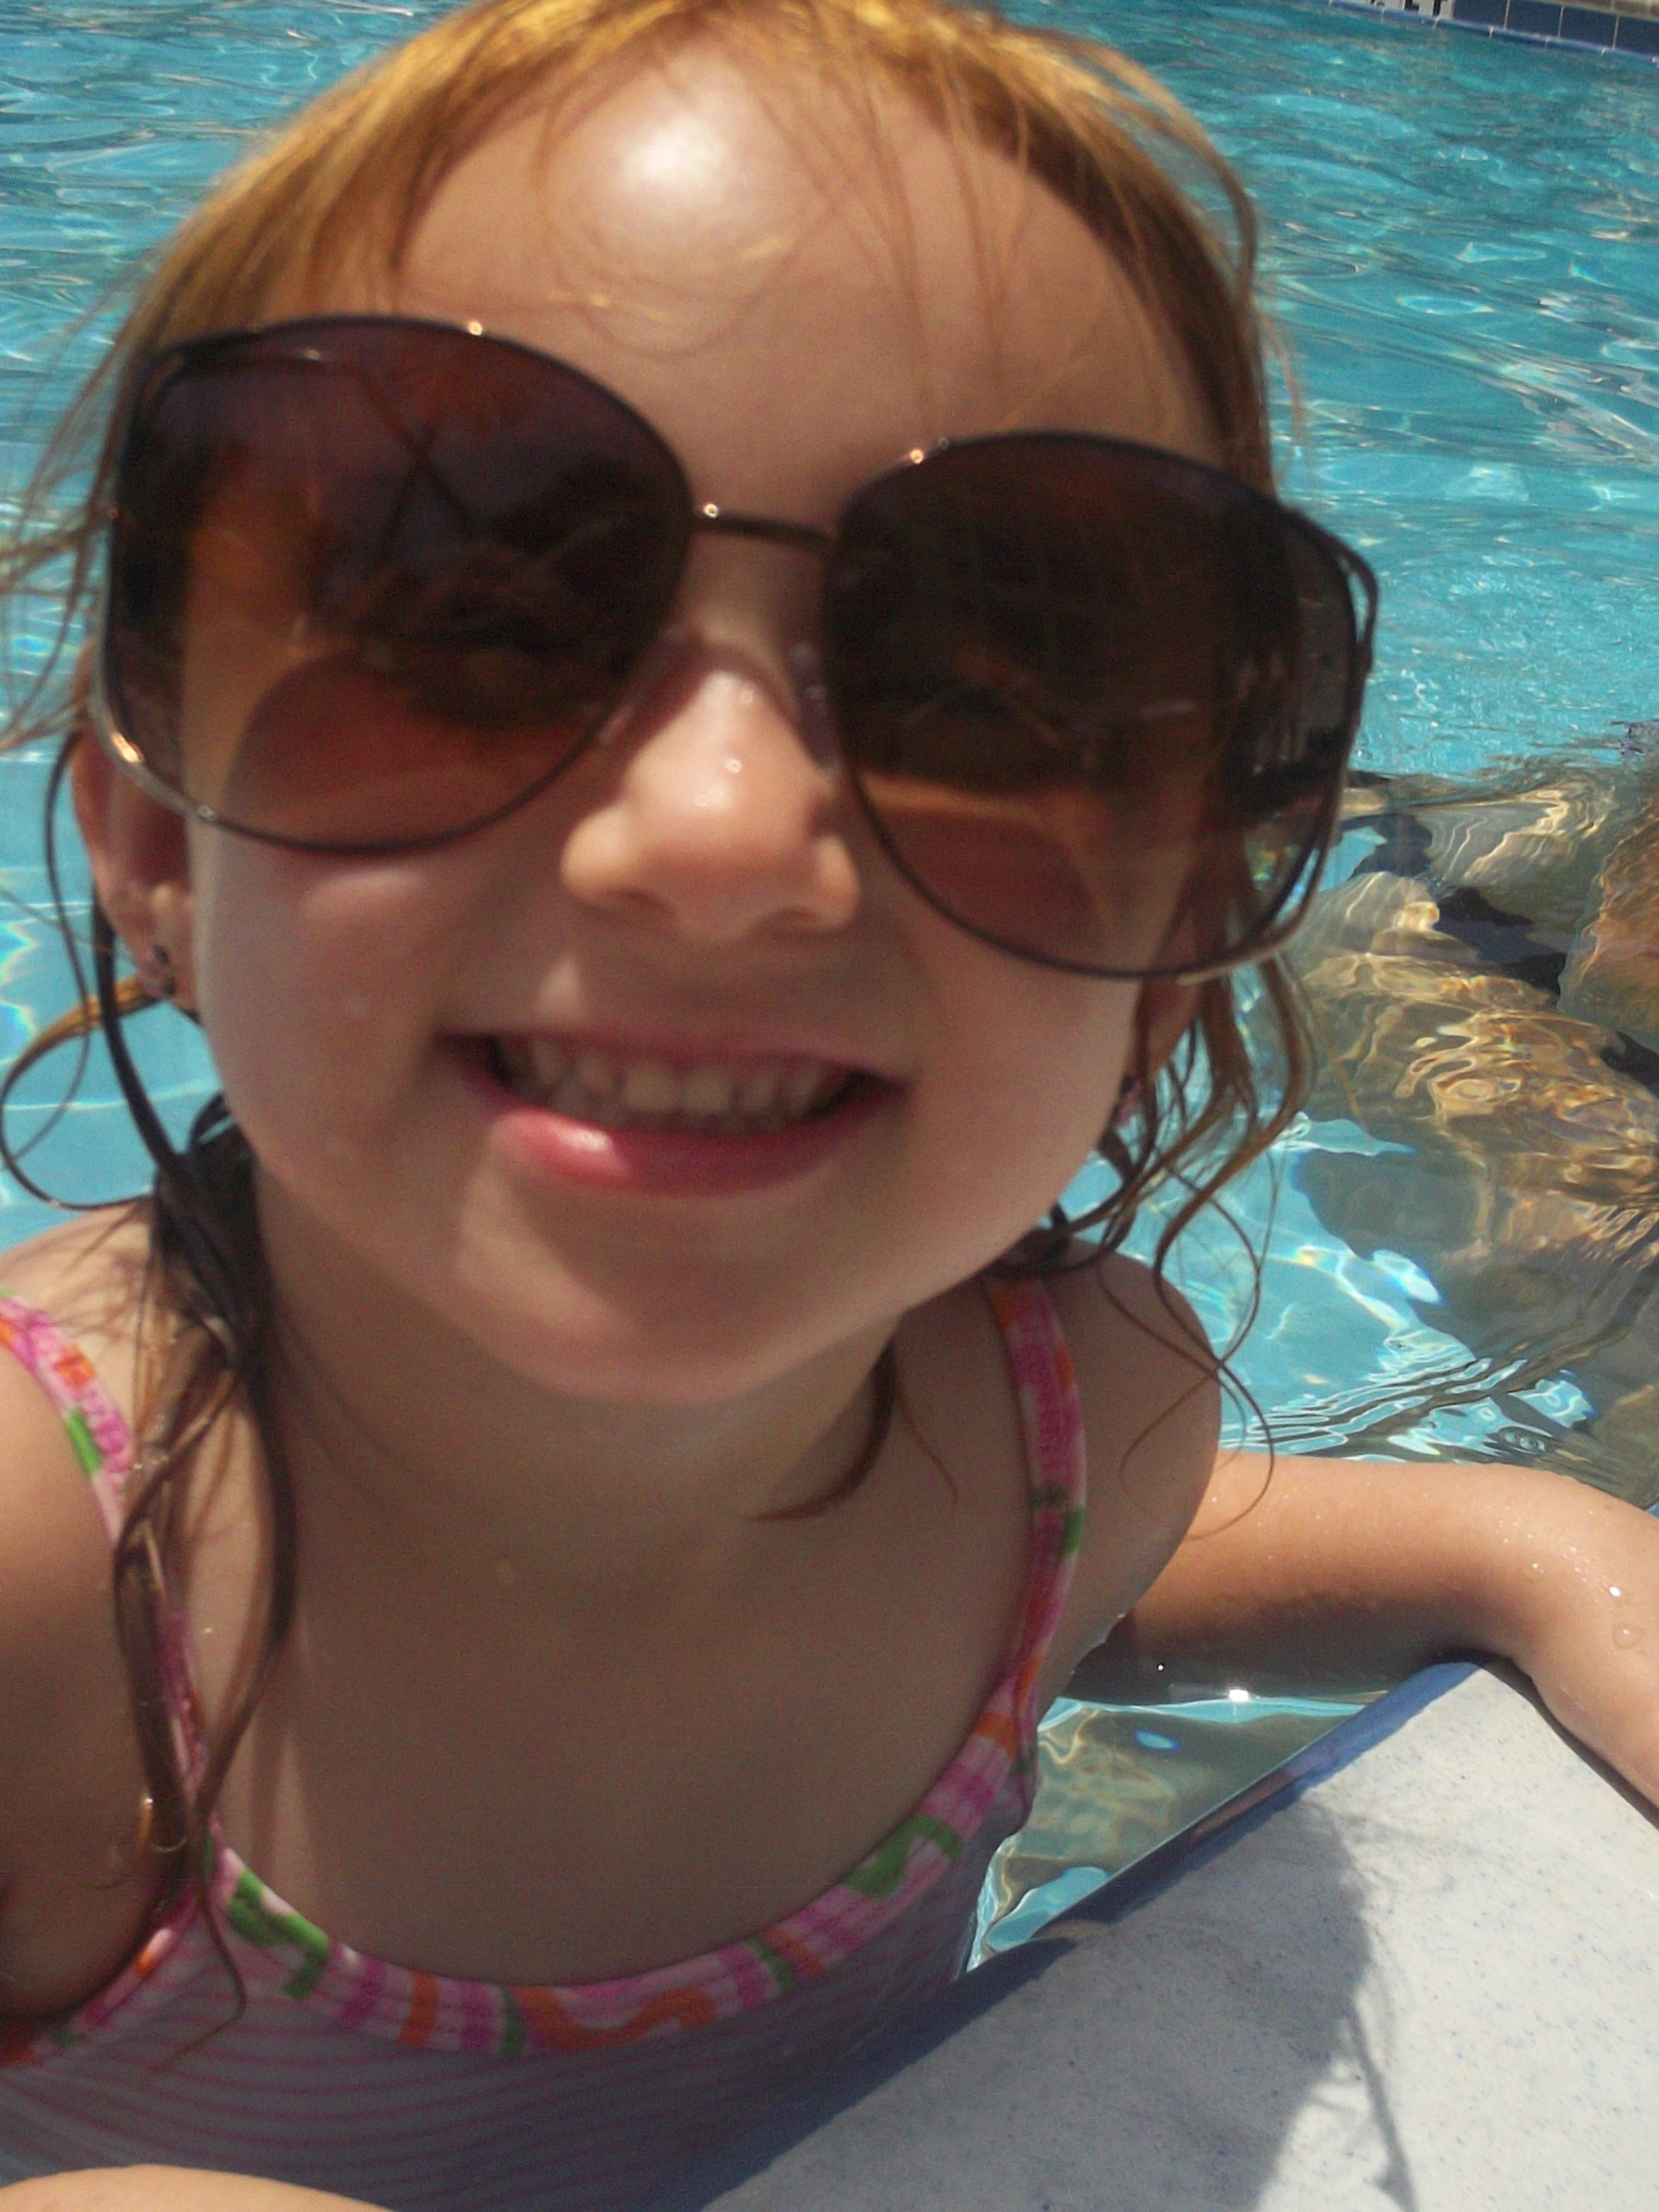 Poolside Photography